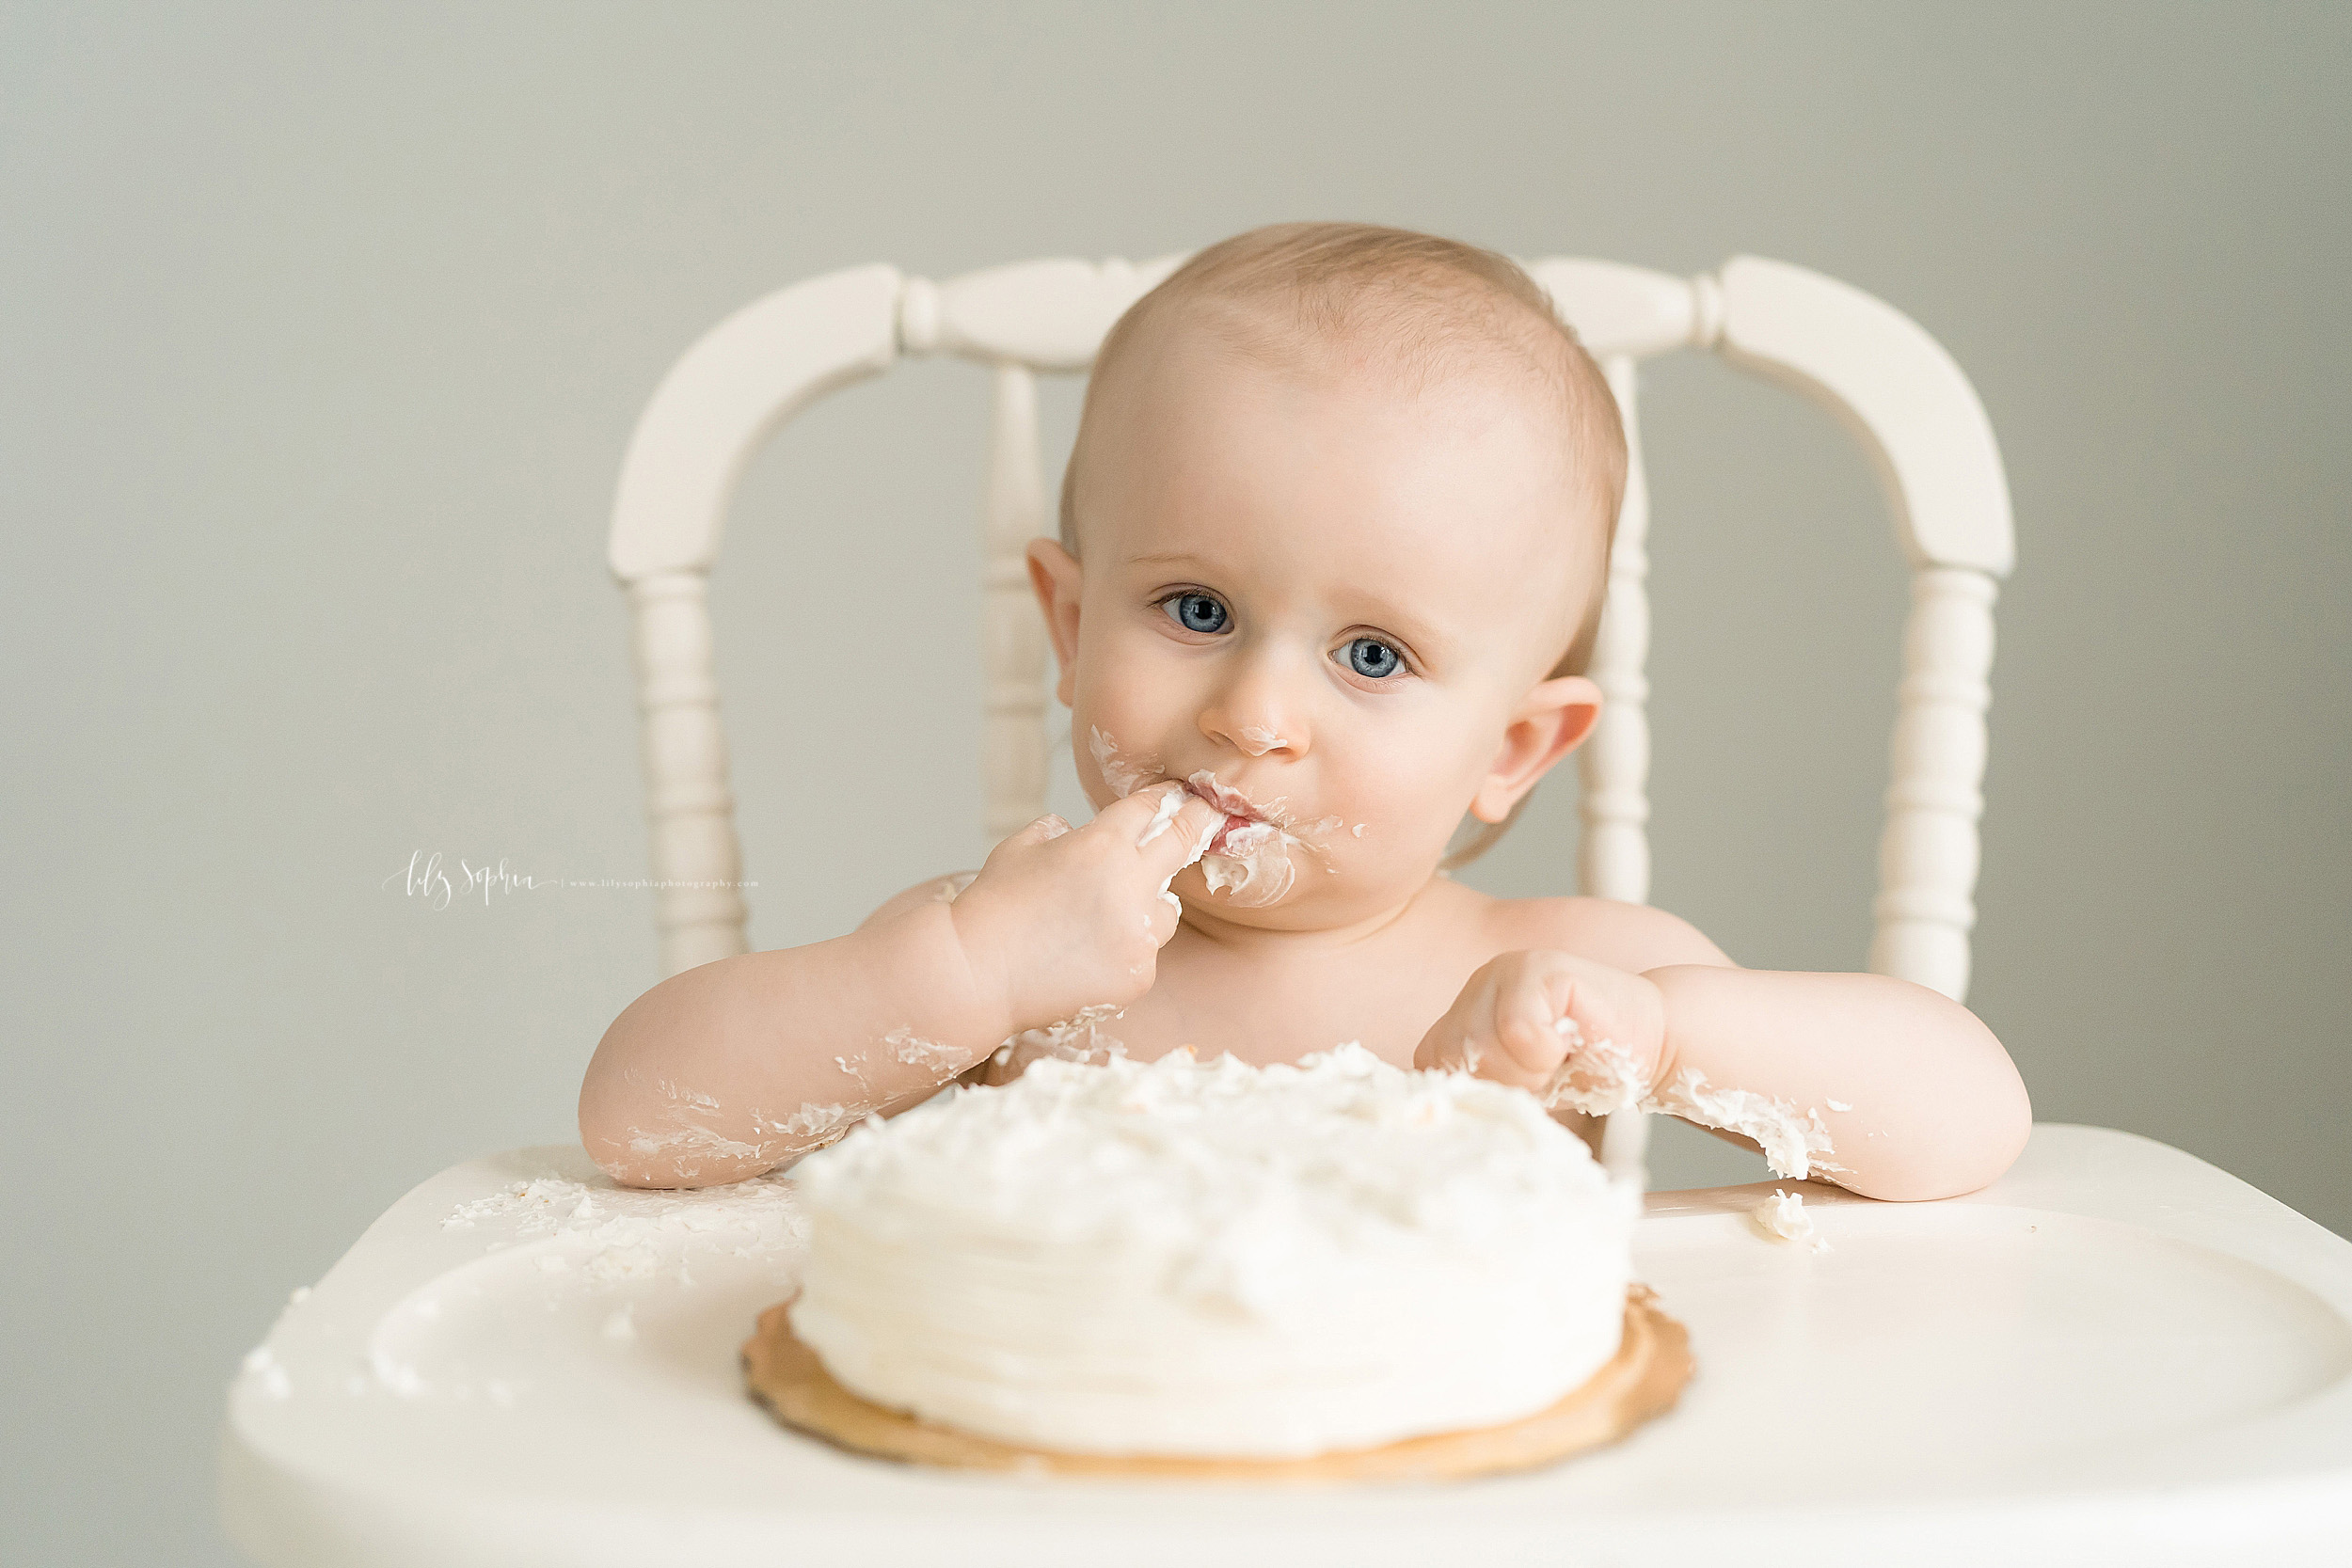 Photo of  a one year old blue eyed boy eating his smash cake in an Atlanta studio.  The one year old is sitting in an antique cream colored wooden high chair.  He has his right pointer and middle finger in his mouth licking off the icing.  The cake is sitting in front of him on the tray of the high chair.  His left arm is resting on the tray of the high chair and he has icing on both forearms.